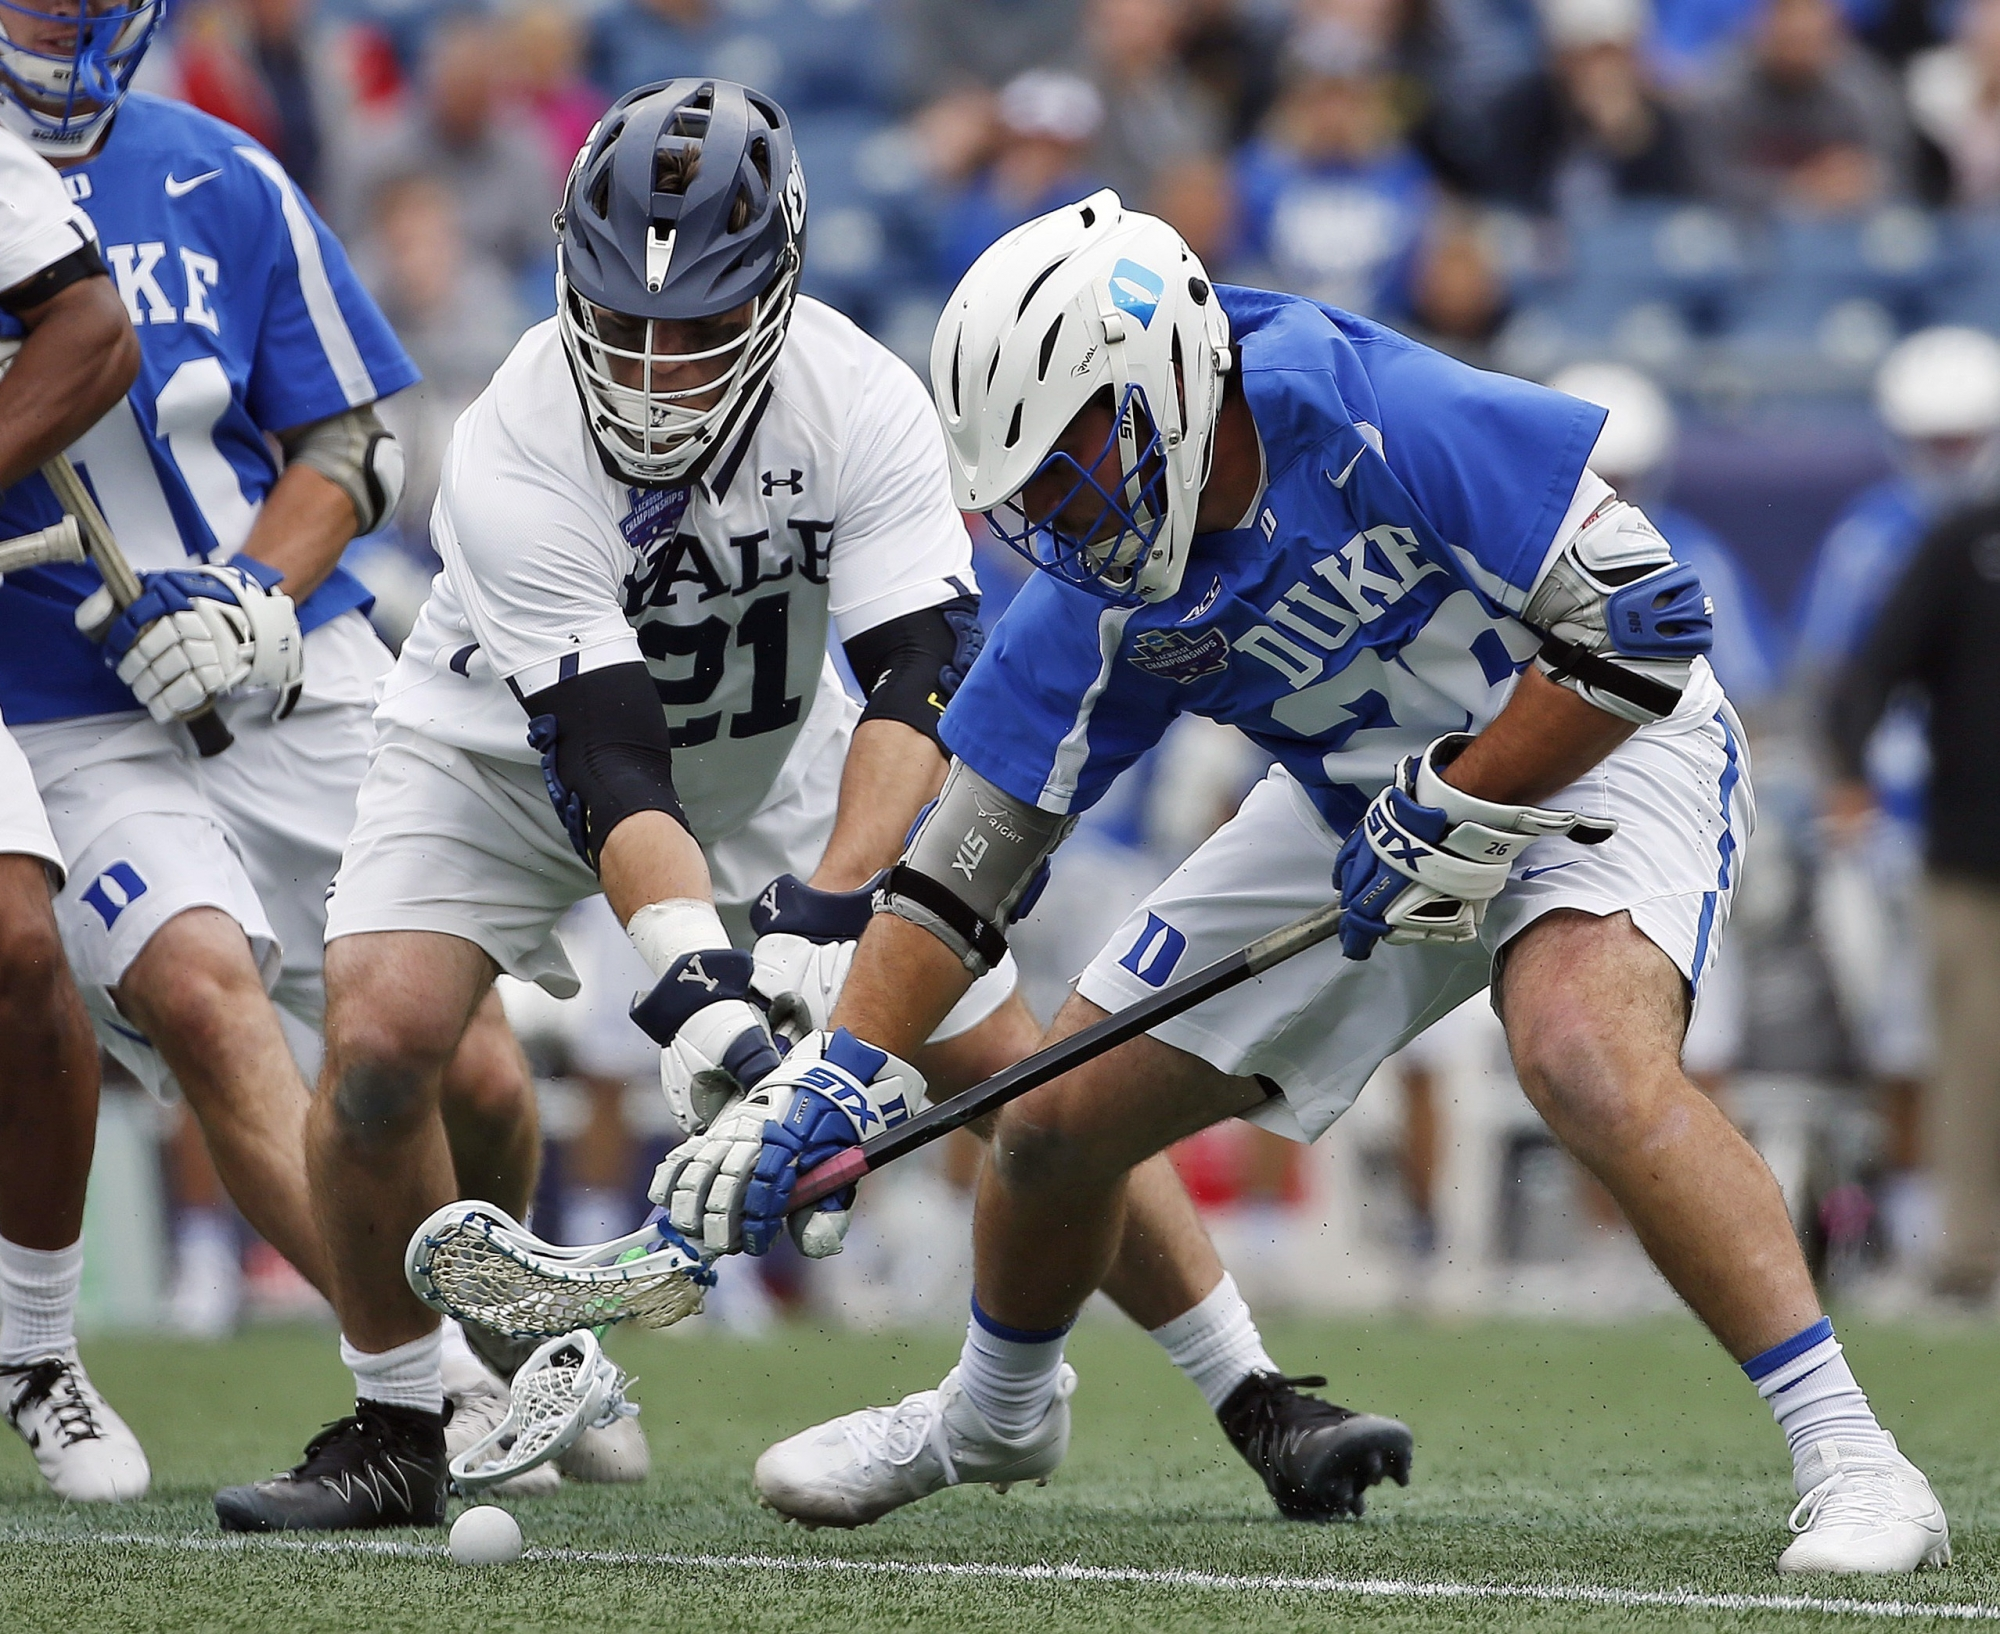 Penn State Riding High Heading To Lacrosse Postseason